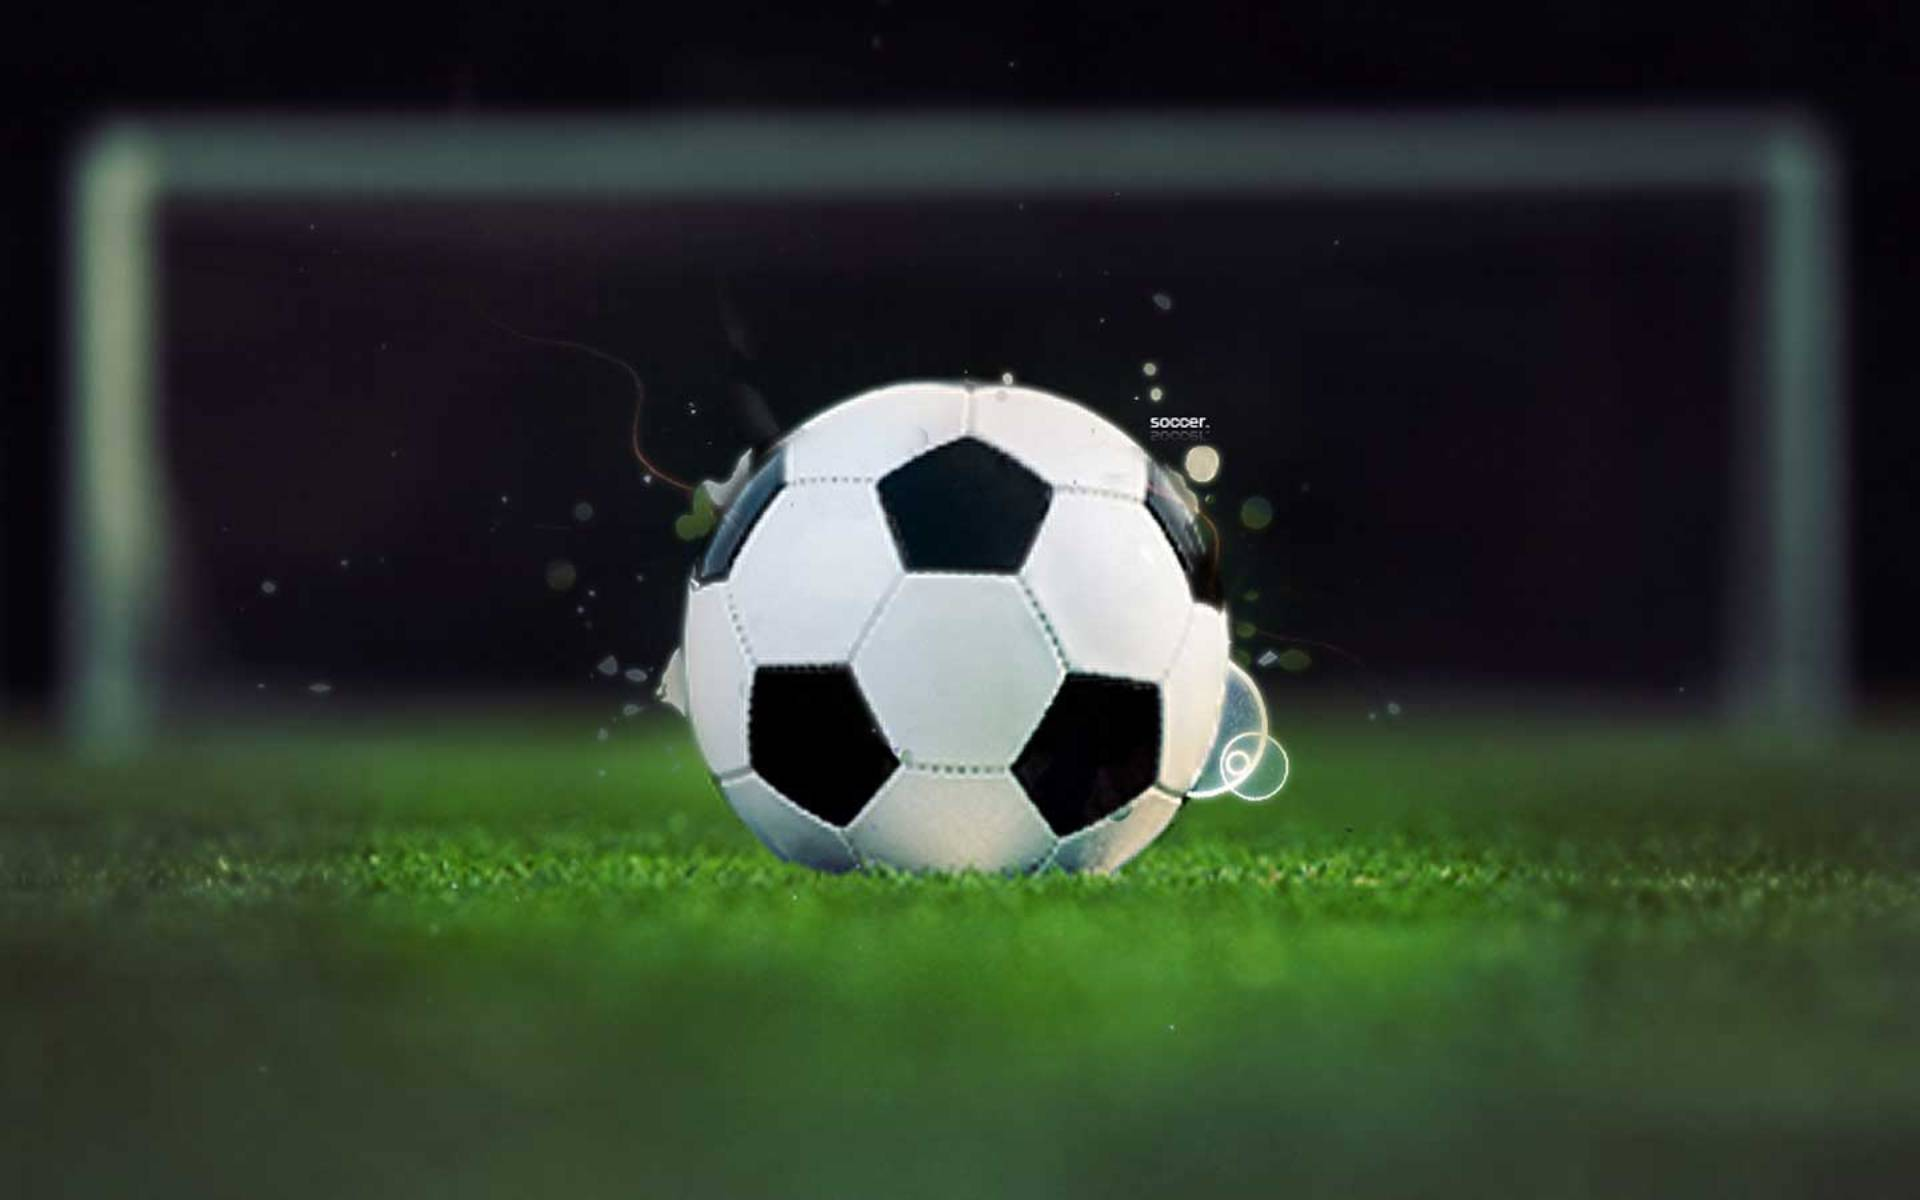 Free Soccer Wallpaper: Soccer Desktop Backgrounds